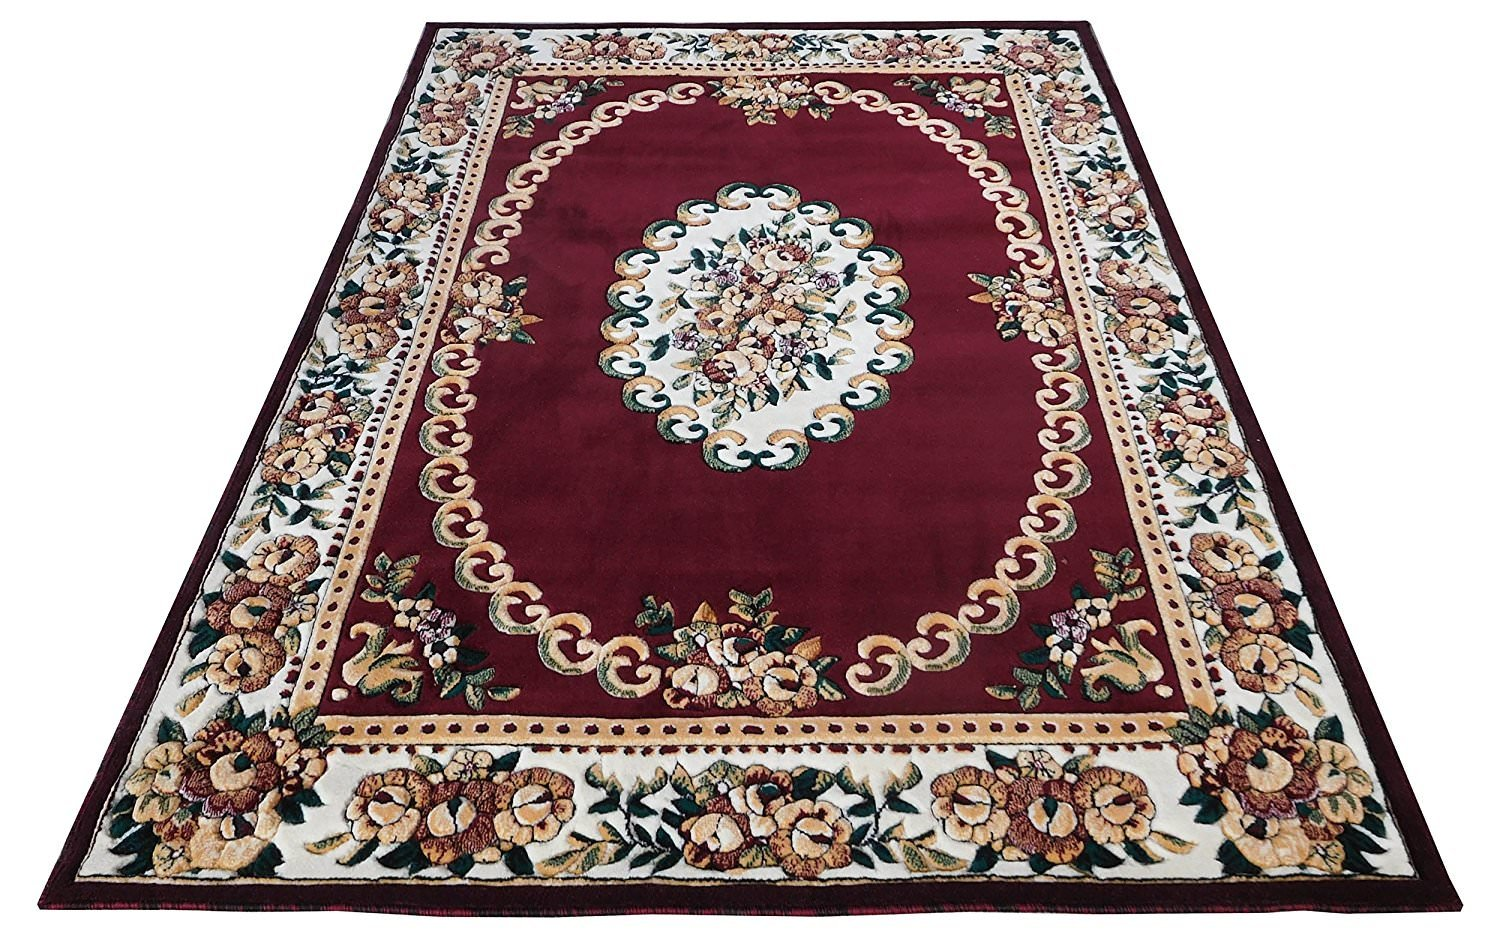 Buy carpets for living room 7 feet x 10 feet hand carved fine acrylic wool approx 1 inch thickness burgundy colour online at low prices in india amazon in